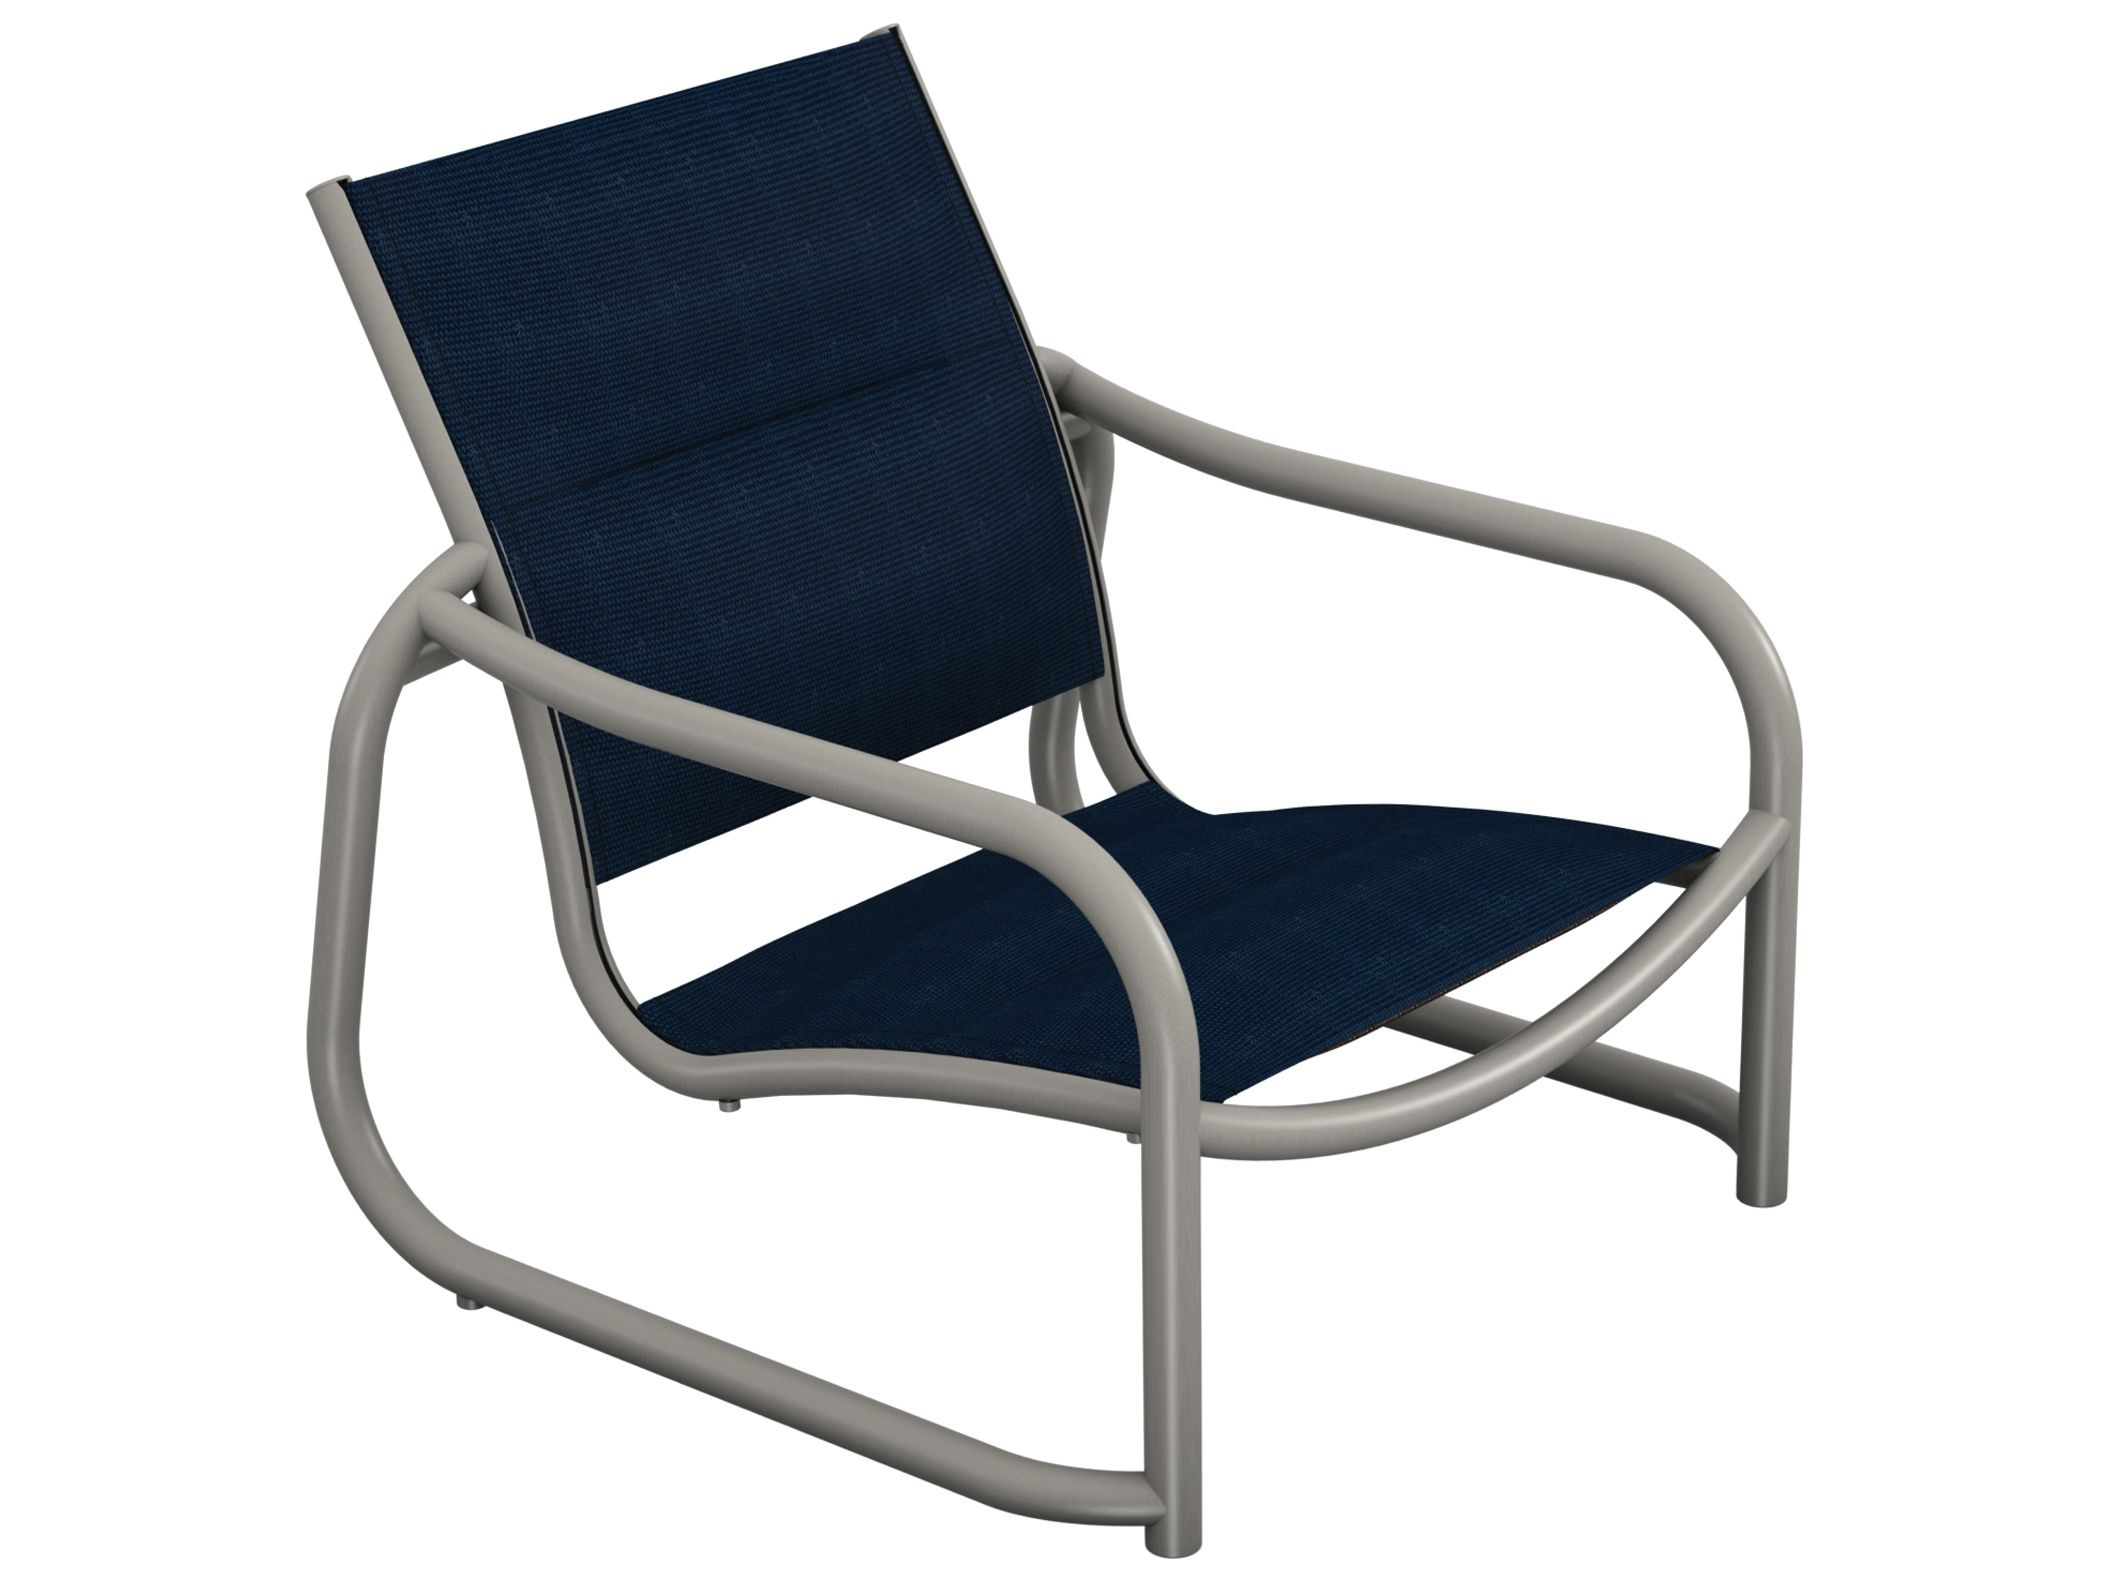 Tropitone Lounge Chair Covers Http Productcreationlabs Com